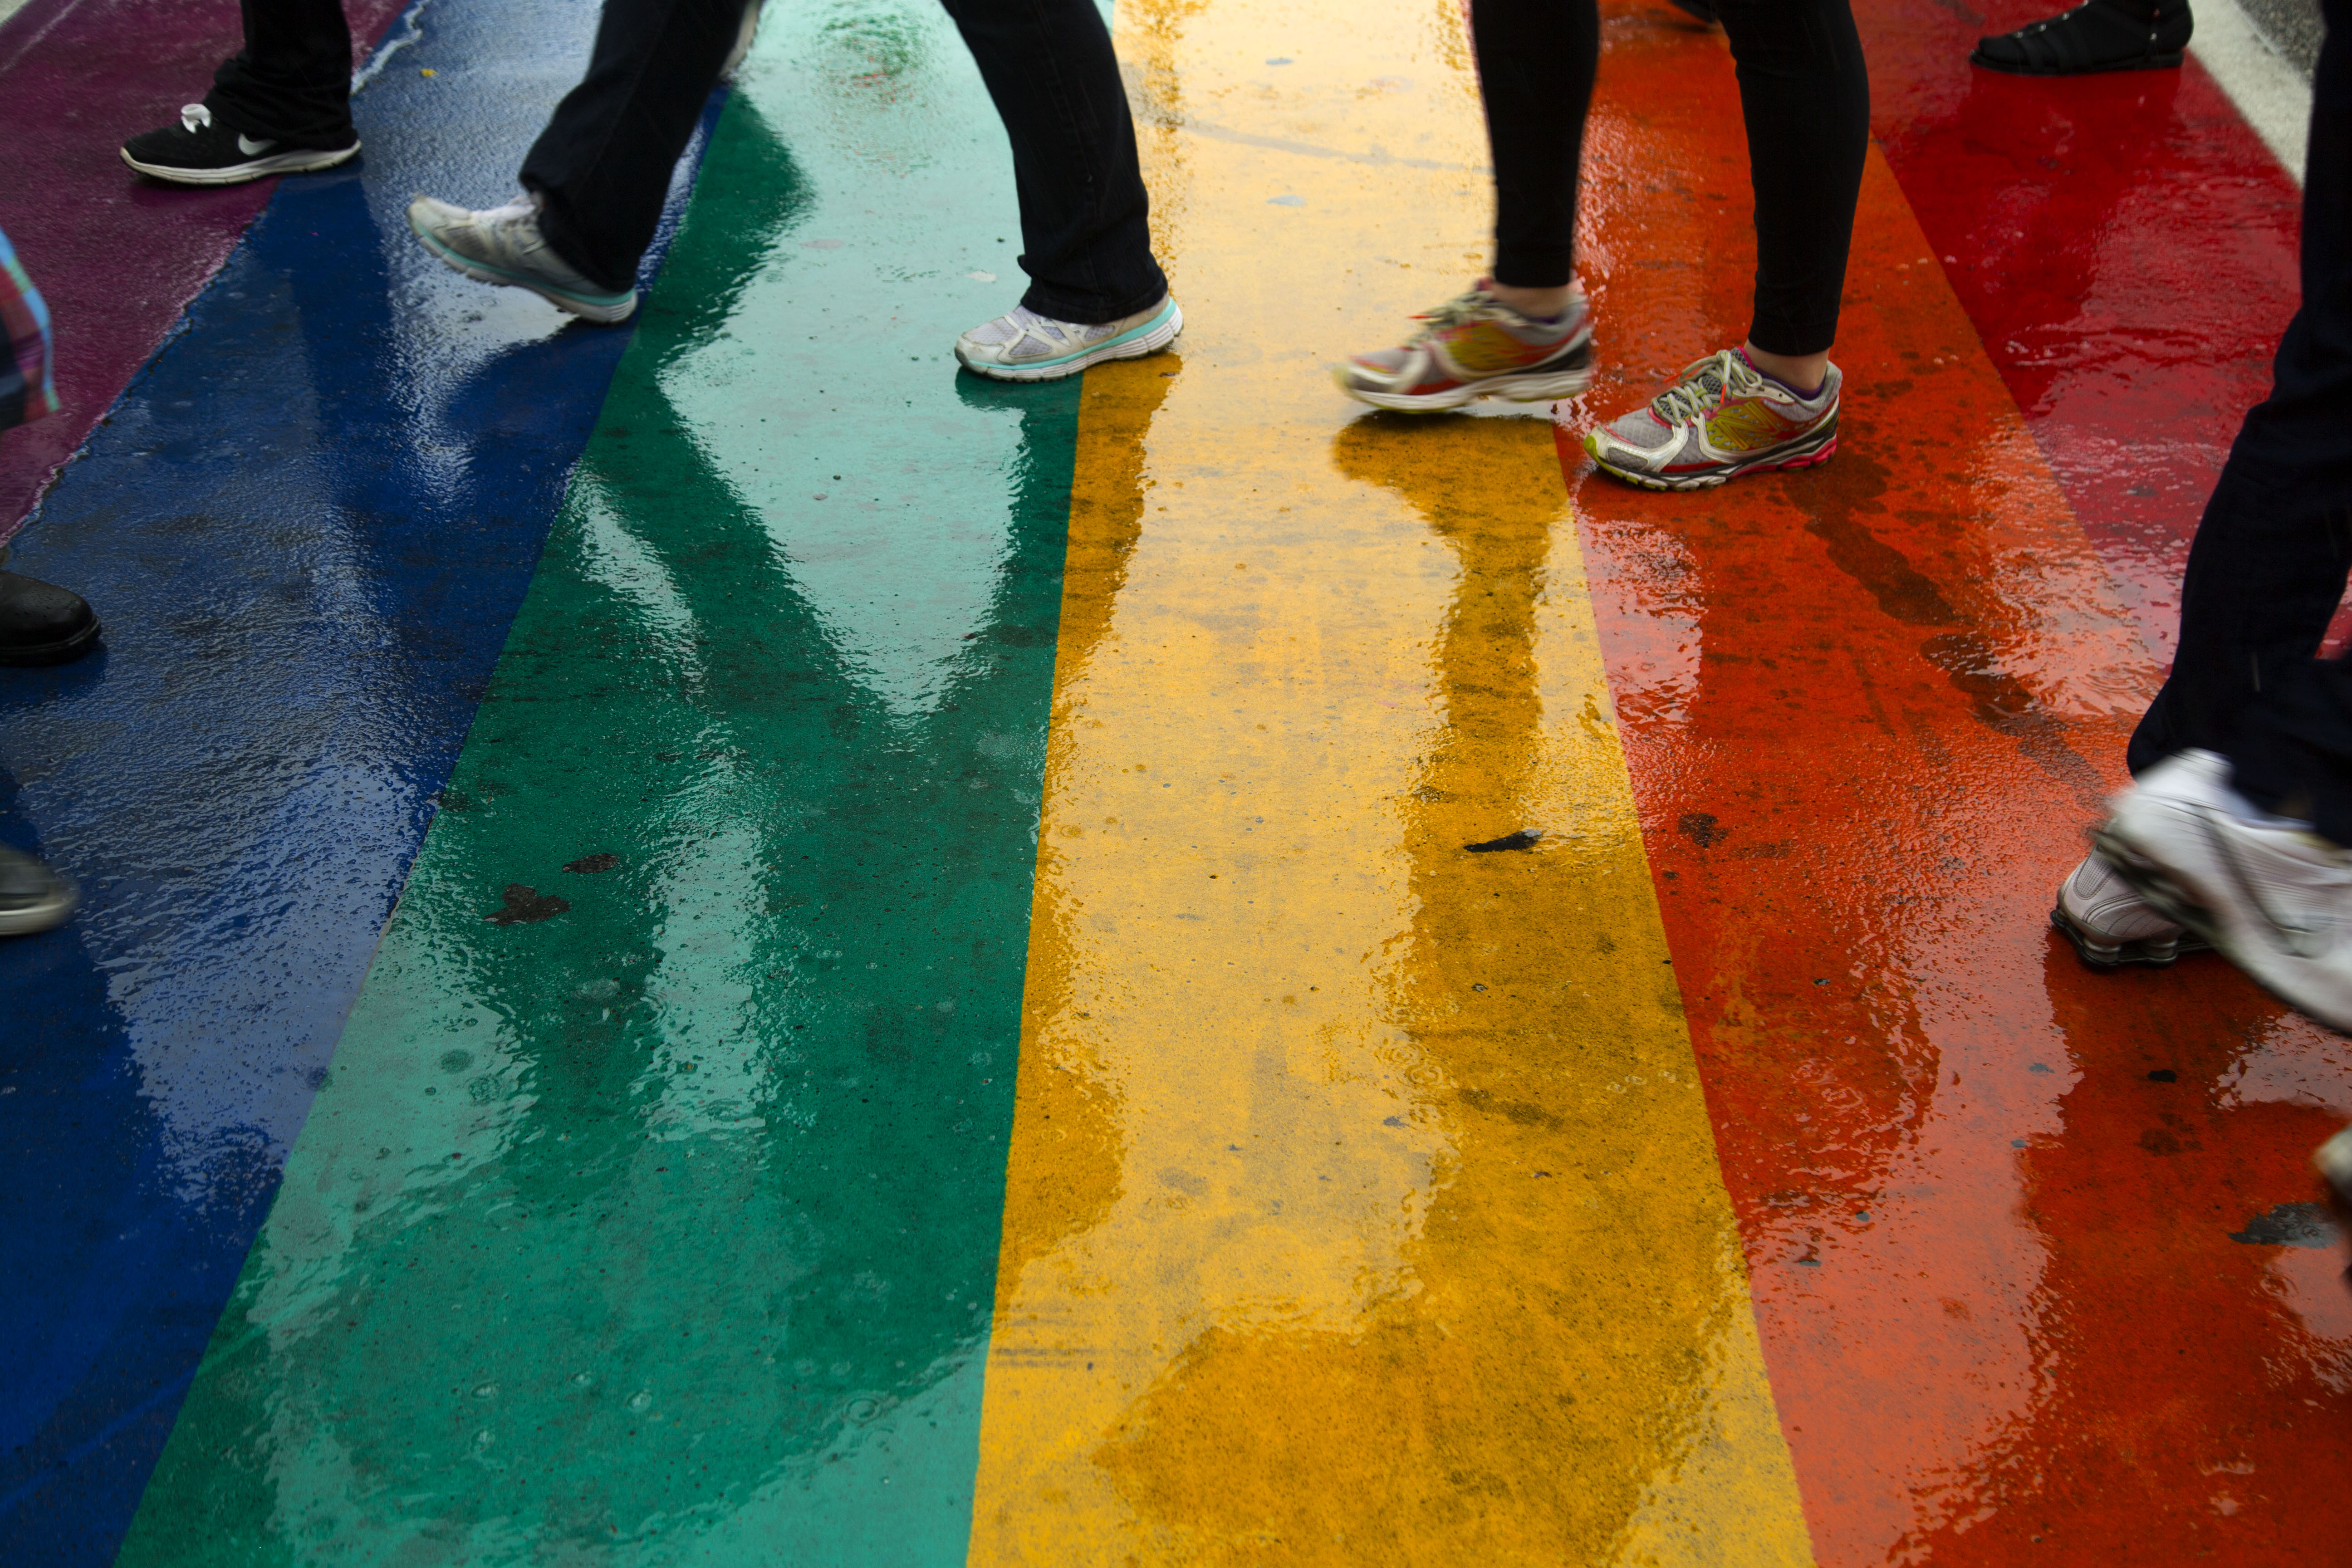 The rainbow painted  crosswalks on Church Street reflect the feet of passersby after heavy rain. Participants in the Toronto Dyke March did not let the heavy rainfall dampen their spirits during Pride Toronto 2015. JUNE 27, 2015.